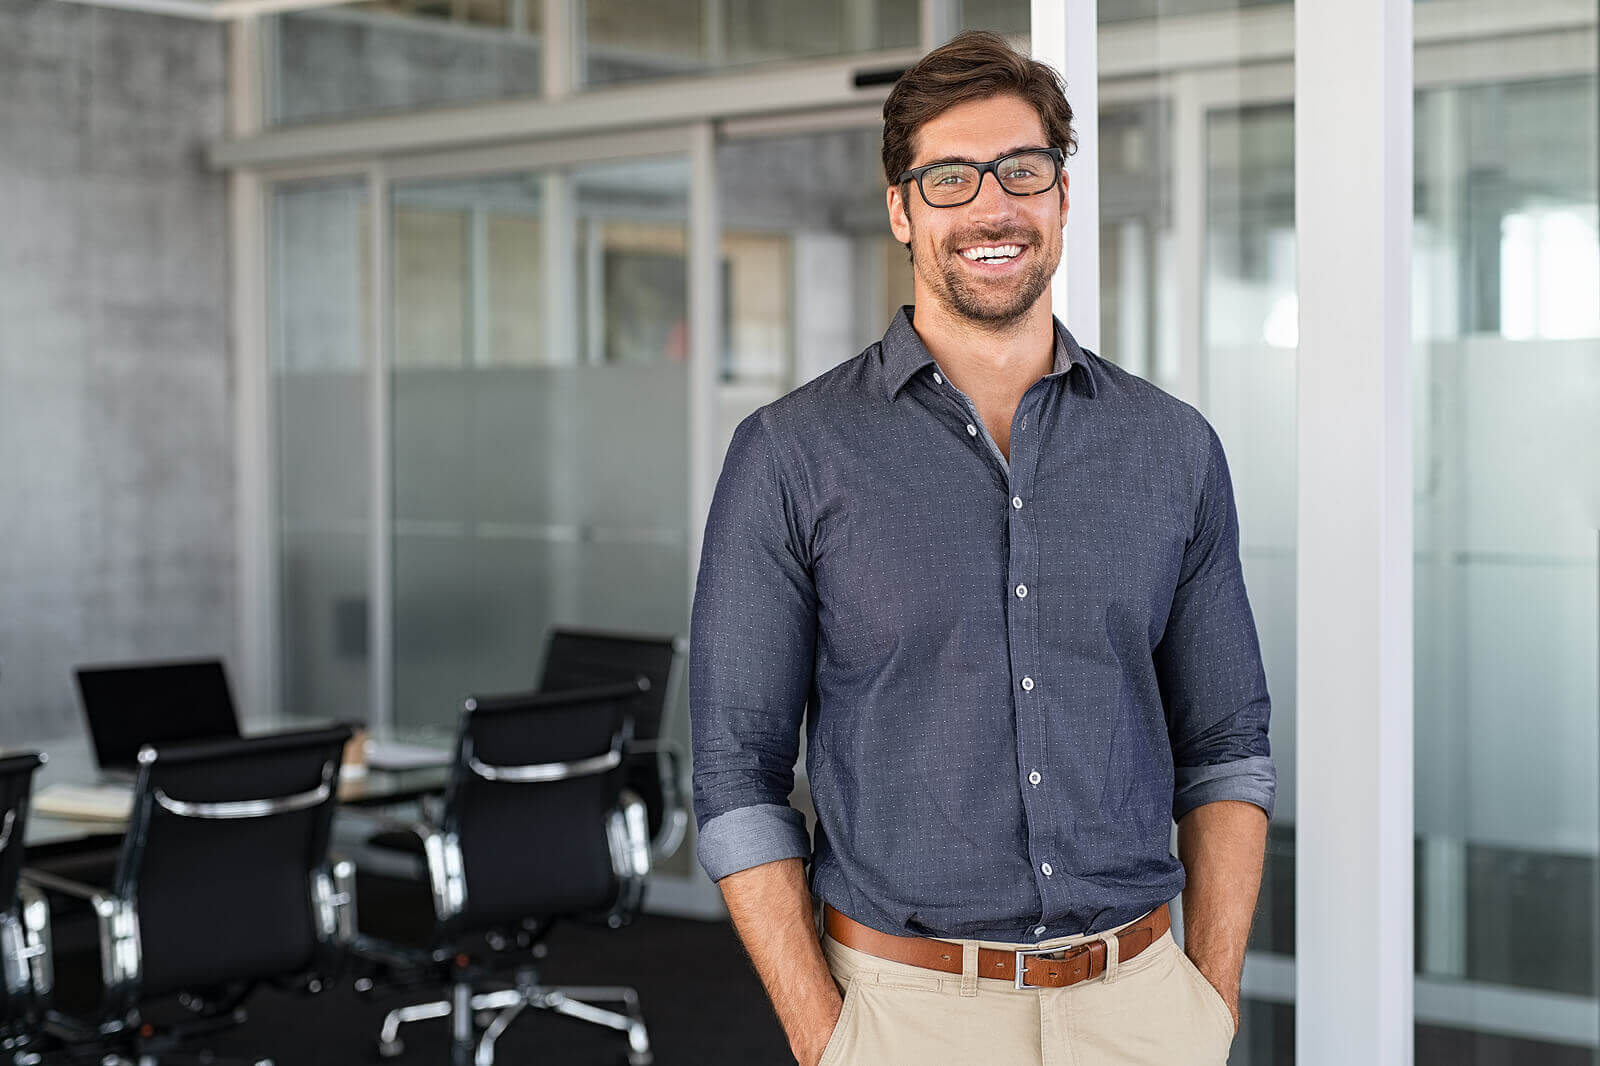 A happy white businessman stood in his office wearing glasses and a blue shirt